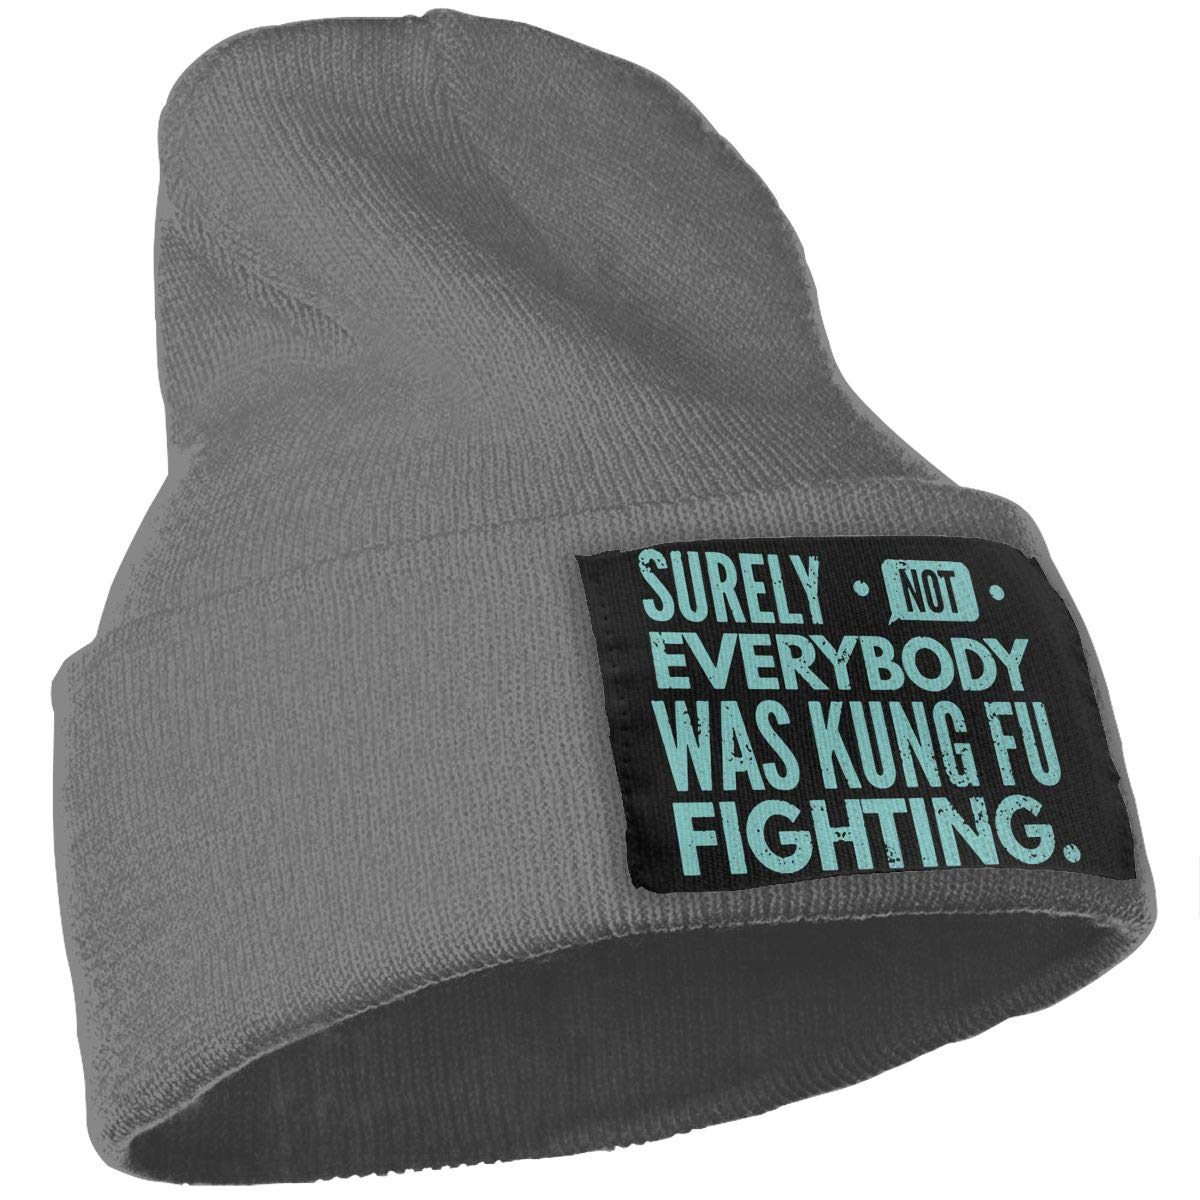 Surely Not Everybody was Kung Fu Fighting Warm Skull Cap Mens Womens 100/% Acrylic Knit Hat Cap